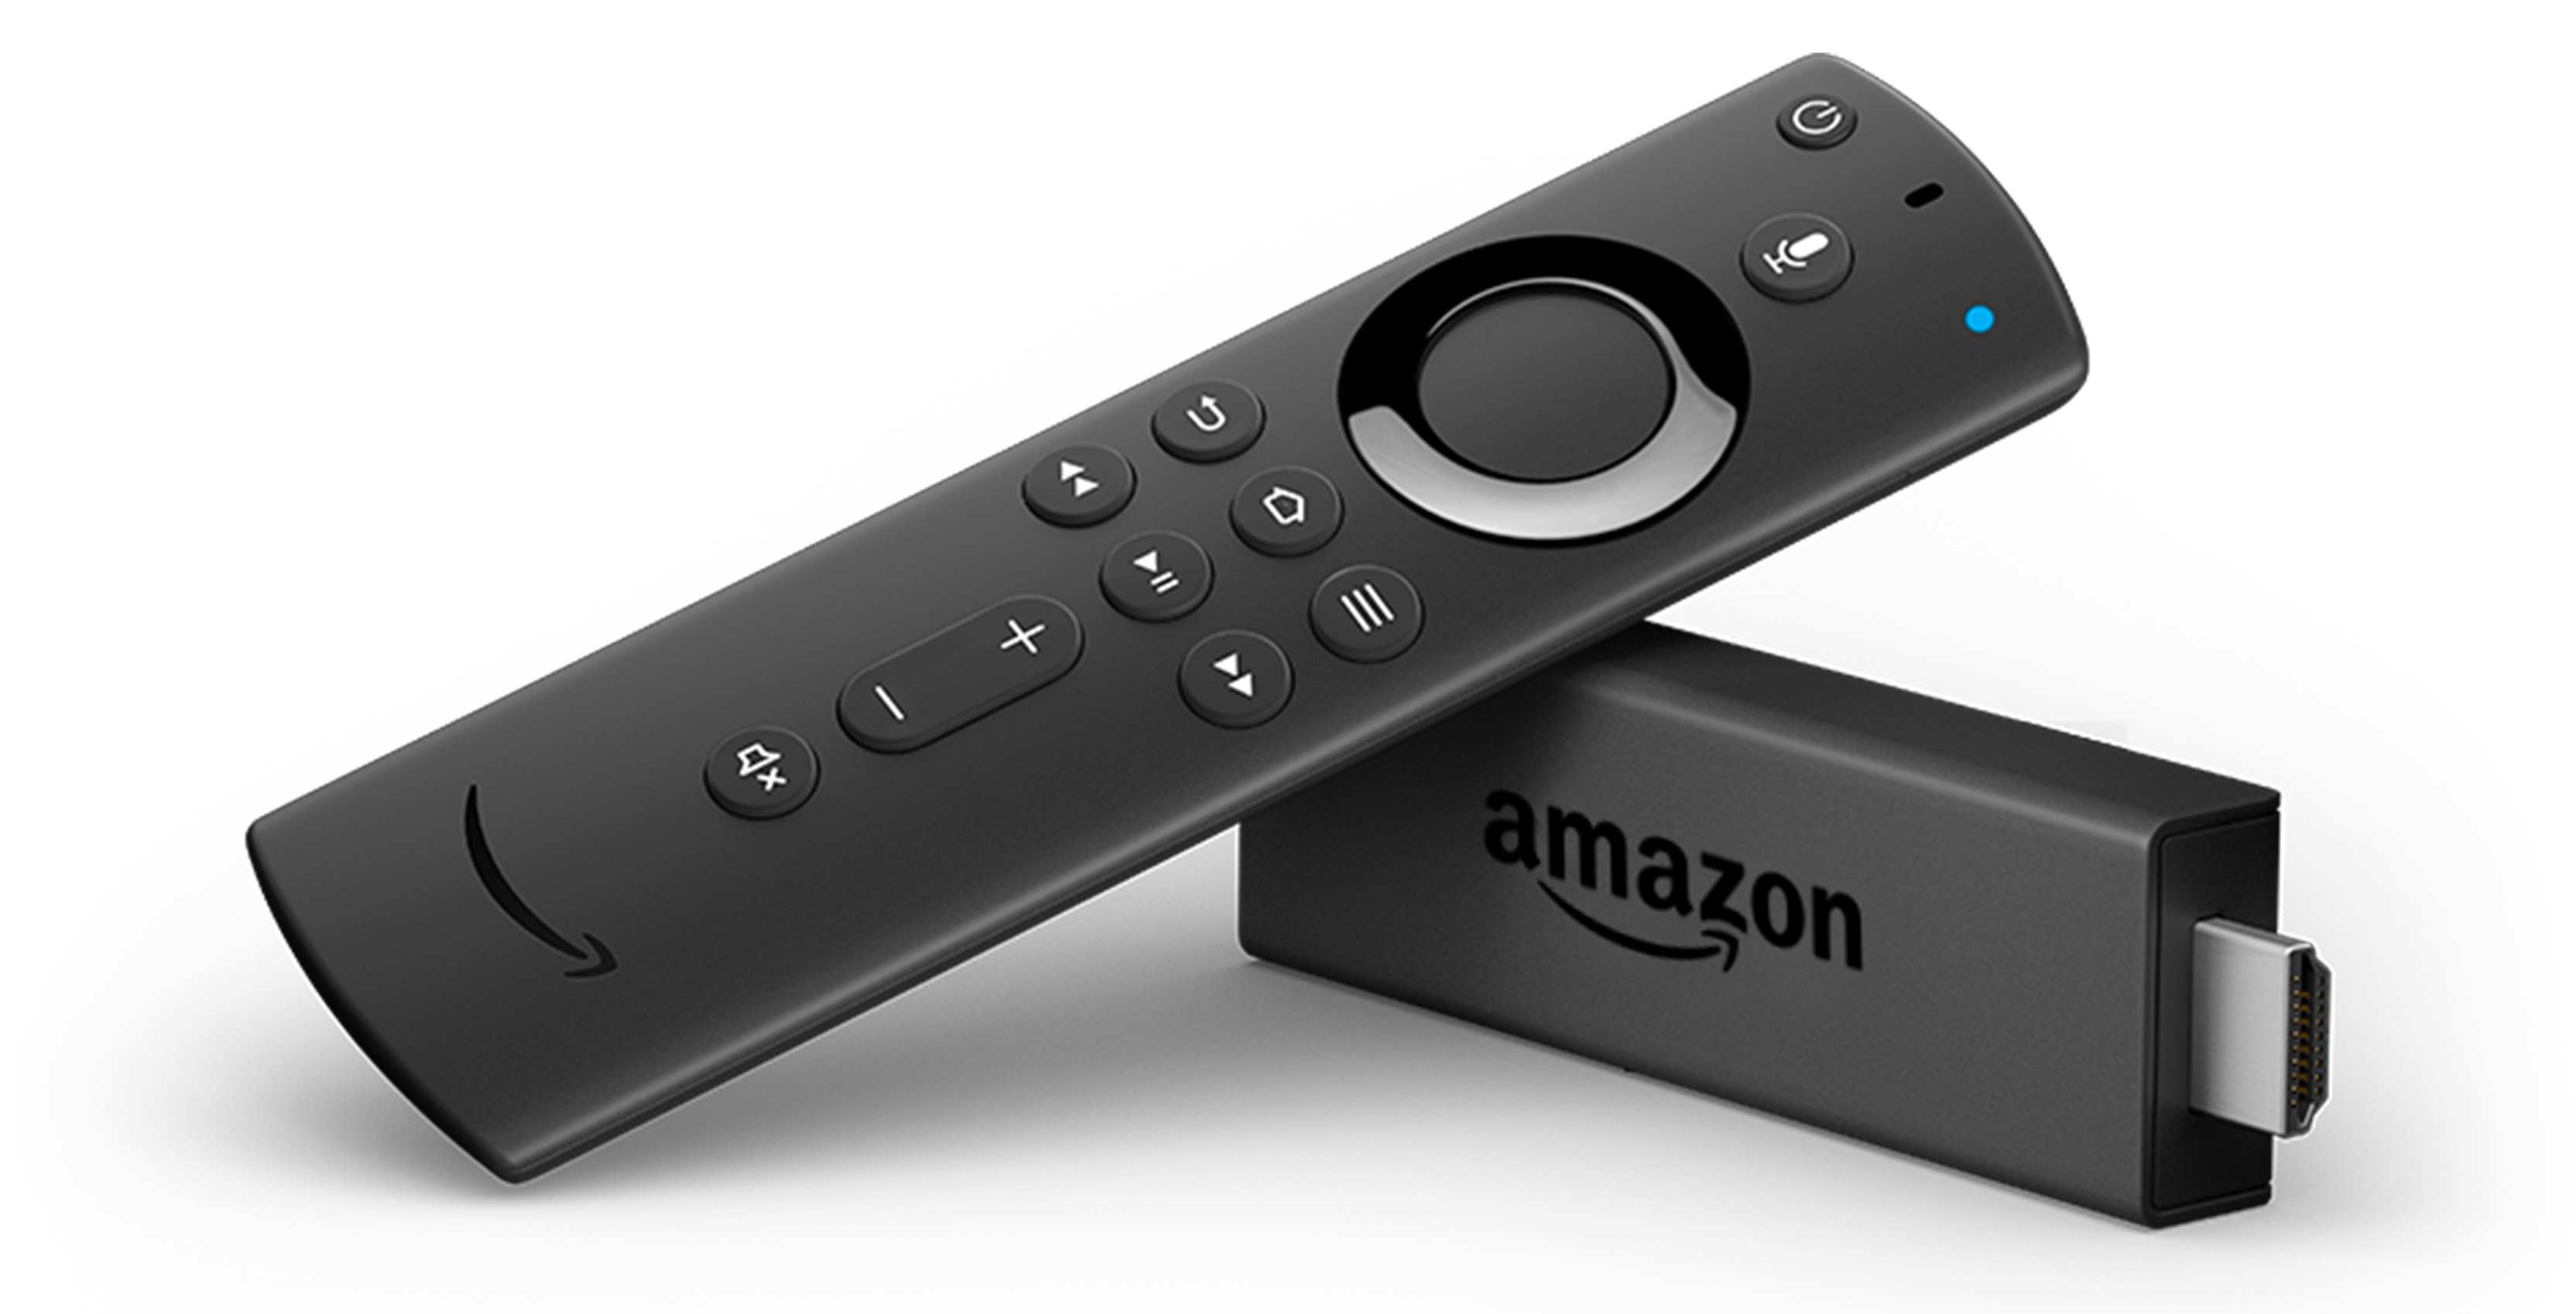 Amazon updates Fire TV Stick with new Alexa voice remote